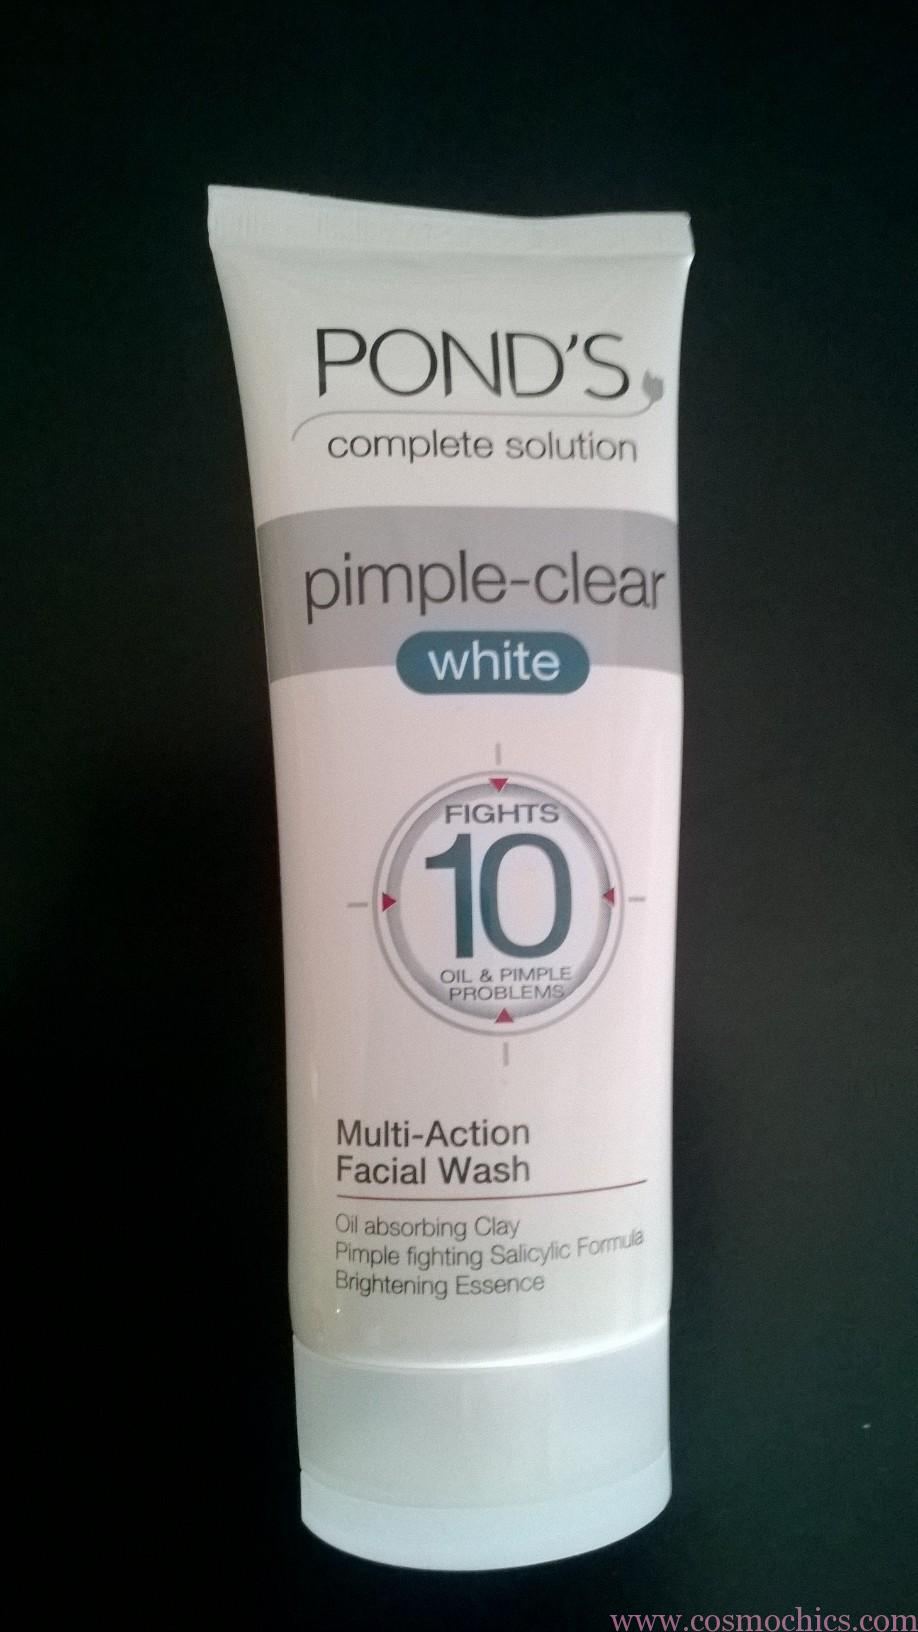 Ponds Pimple Clear White Face Wash For Acne Prone Skin Swatches Https Www Cosmochics Com